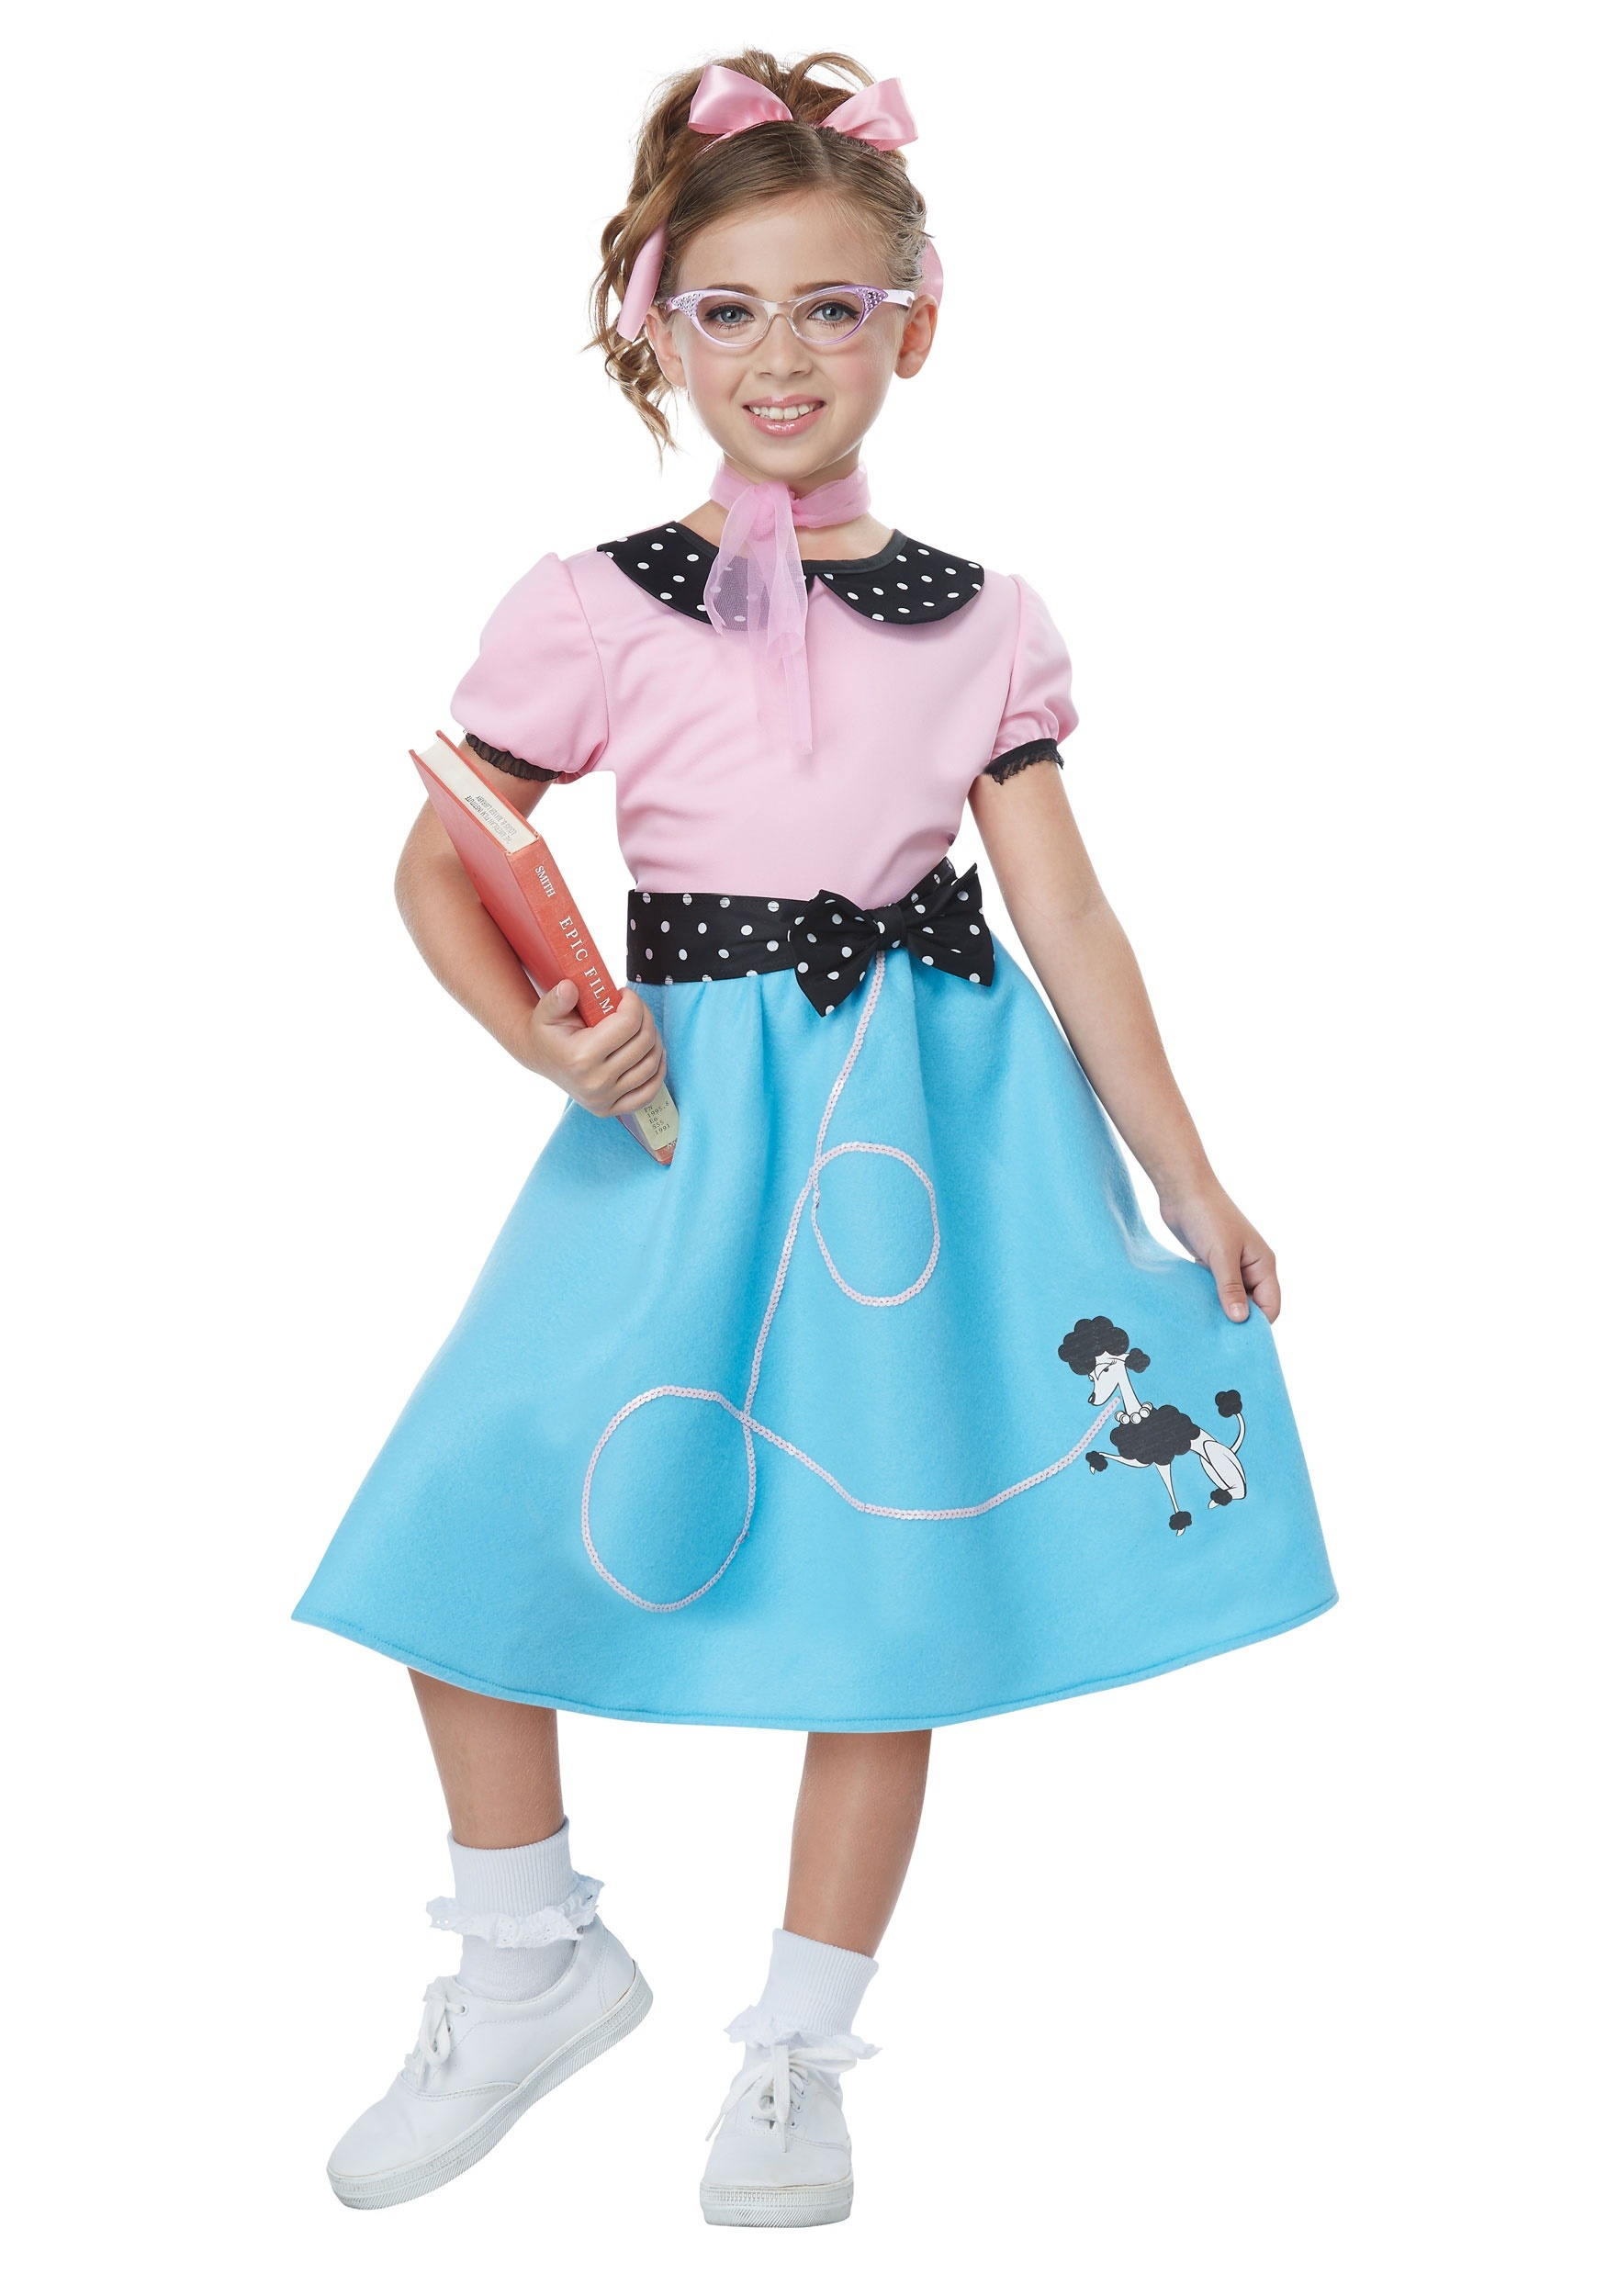 Party City Grease Costumes | 50s Attire | 50s Attire for Guys